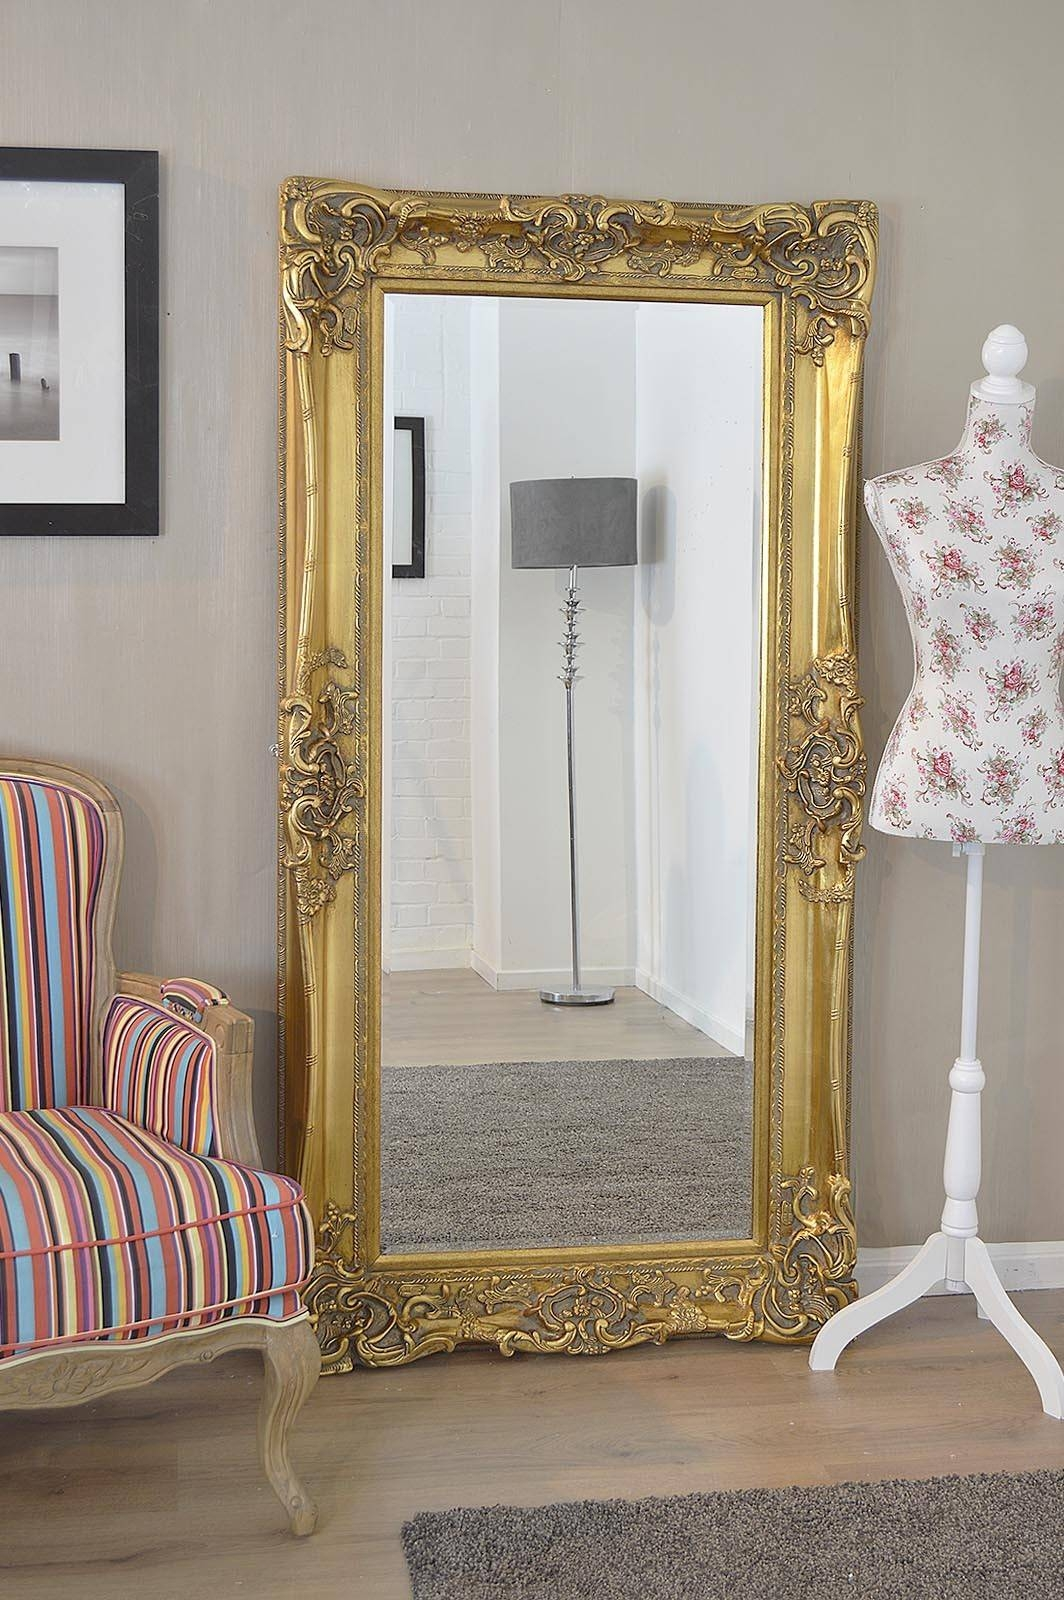 Ornate Mirrors For Sale 35 Cute Interior And Mirror A Large White within White Shabby Chic Mirrors Sale (Image 18 of 25)